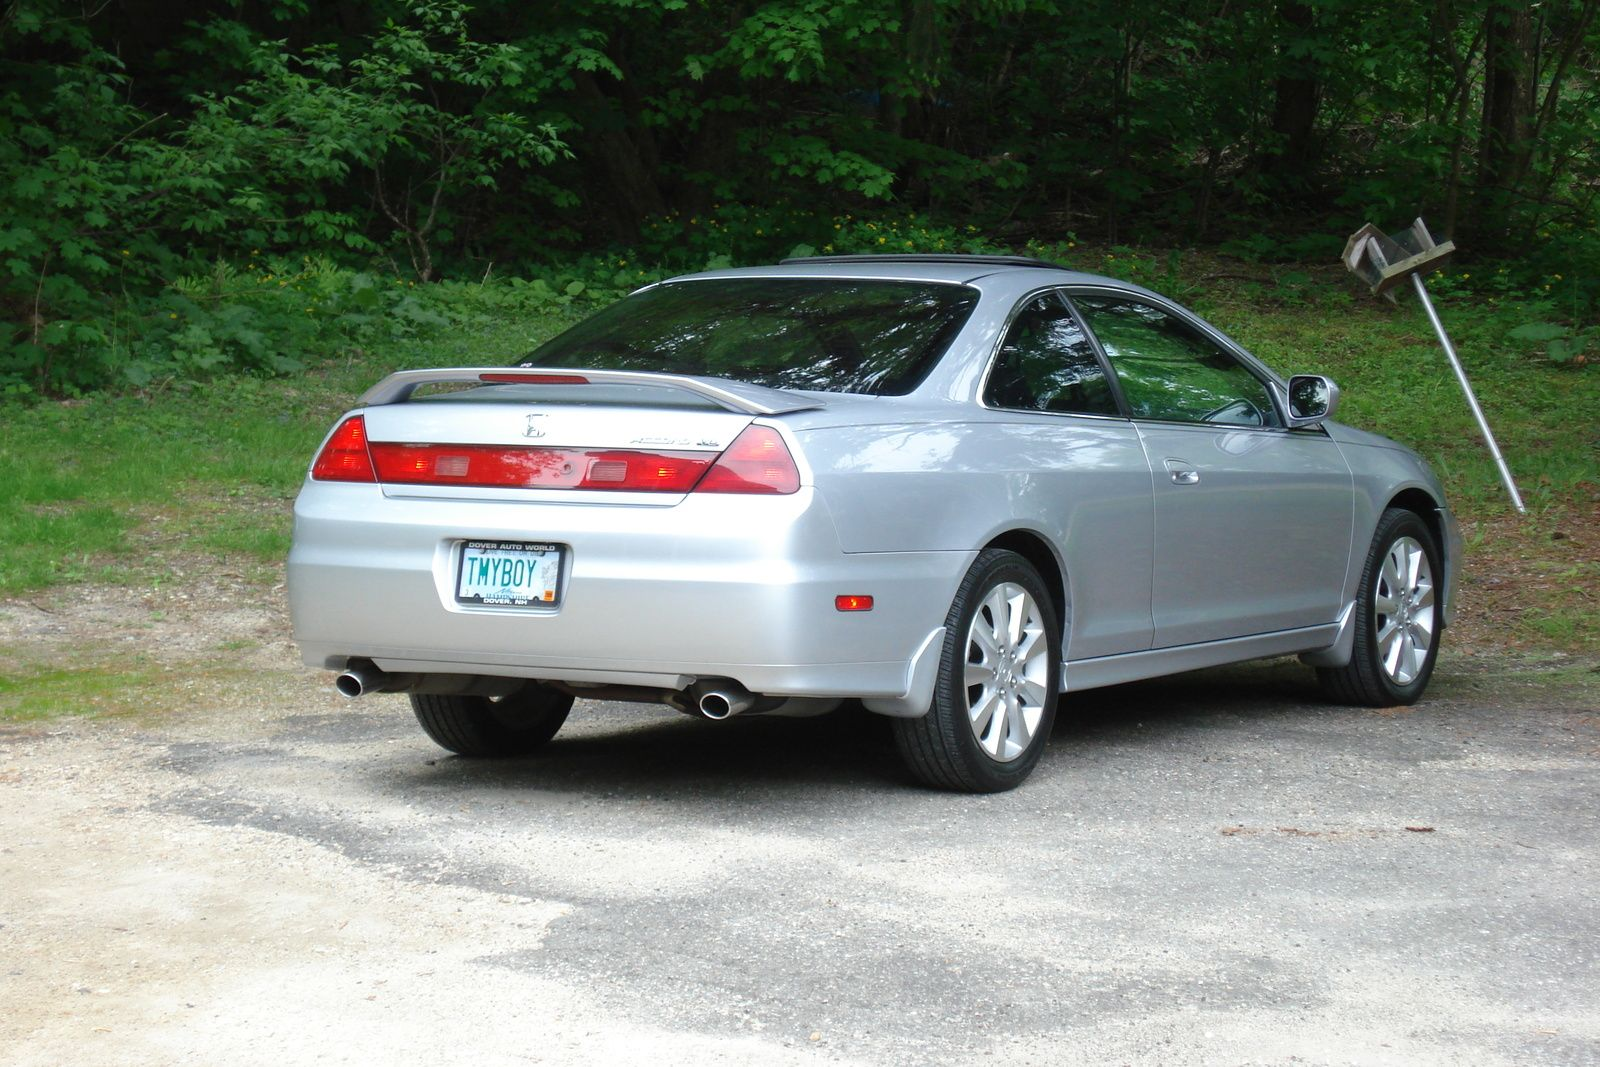 2002 honda accord ex v6 coupe fantastically super great pinterest. Black Bedroom Furniture Sets. Home Design Ideas